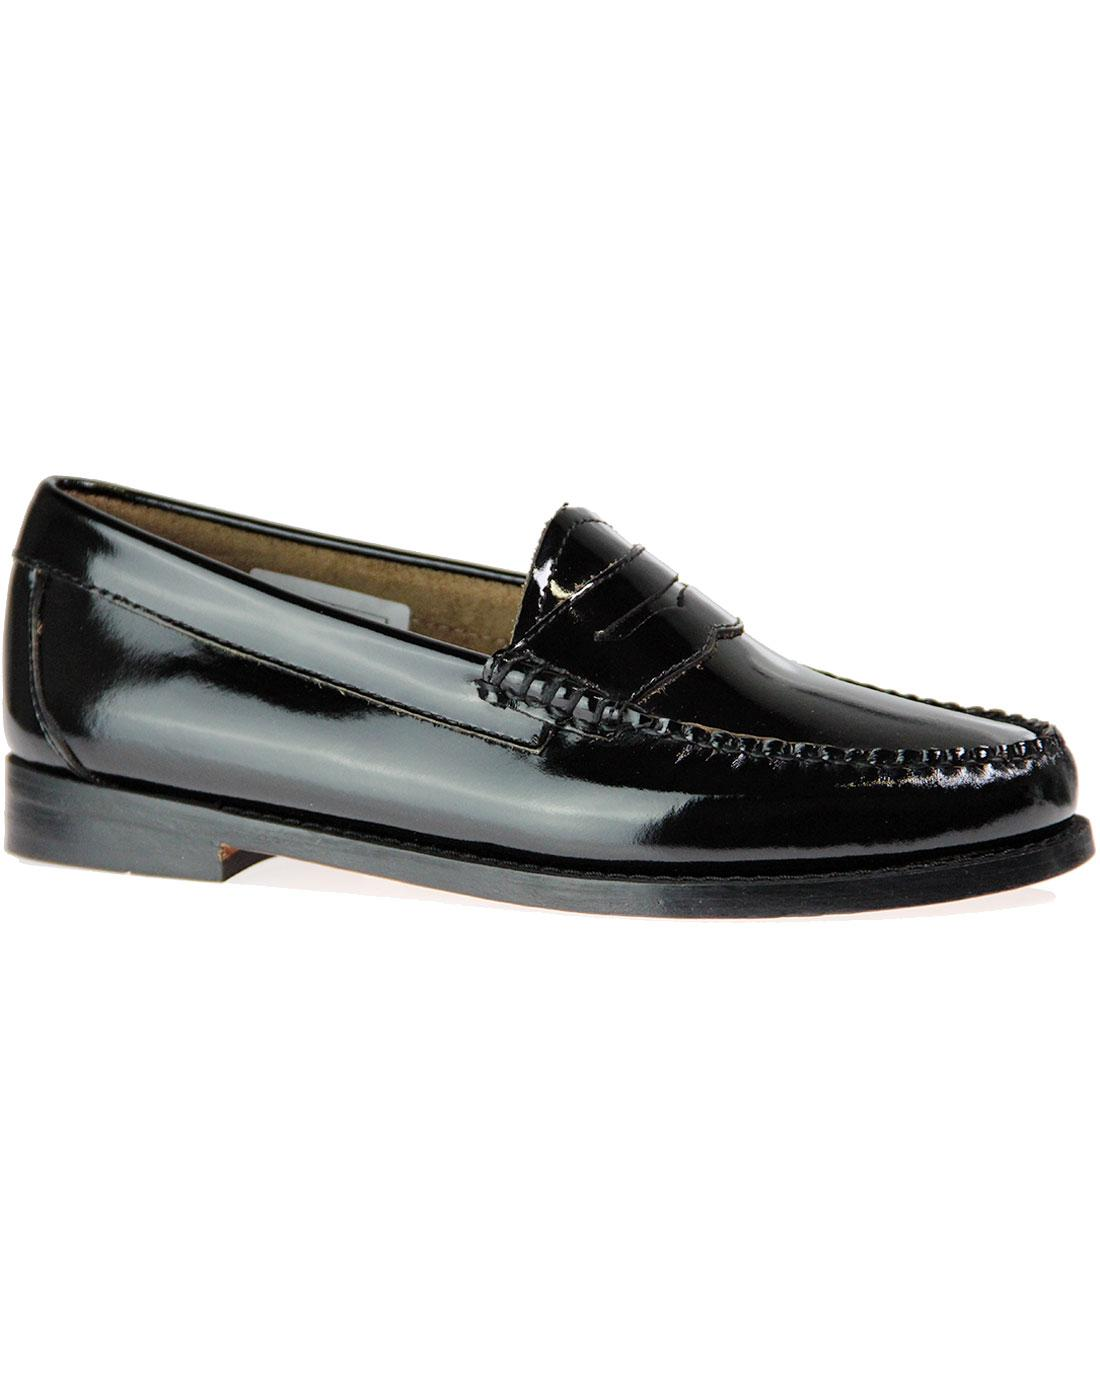 Penny Wheel BASS WEEJUN Retro Patent Loafers B